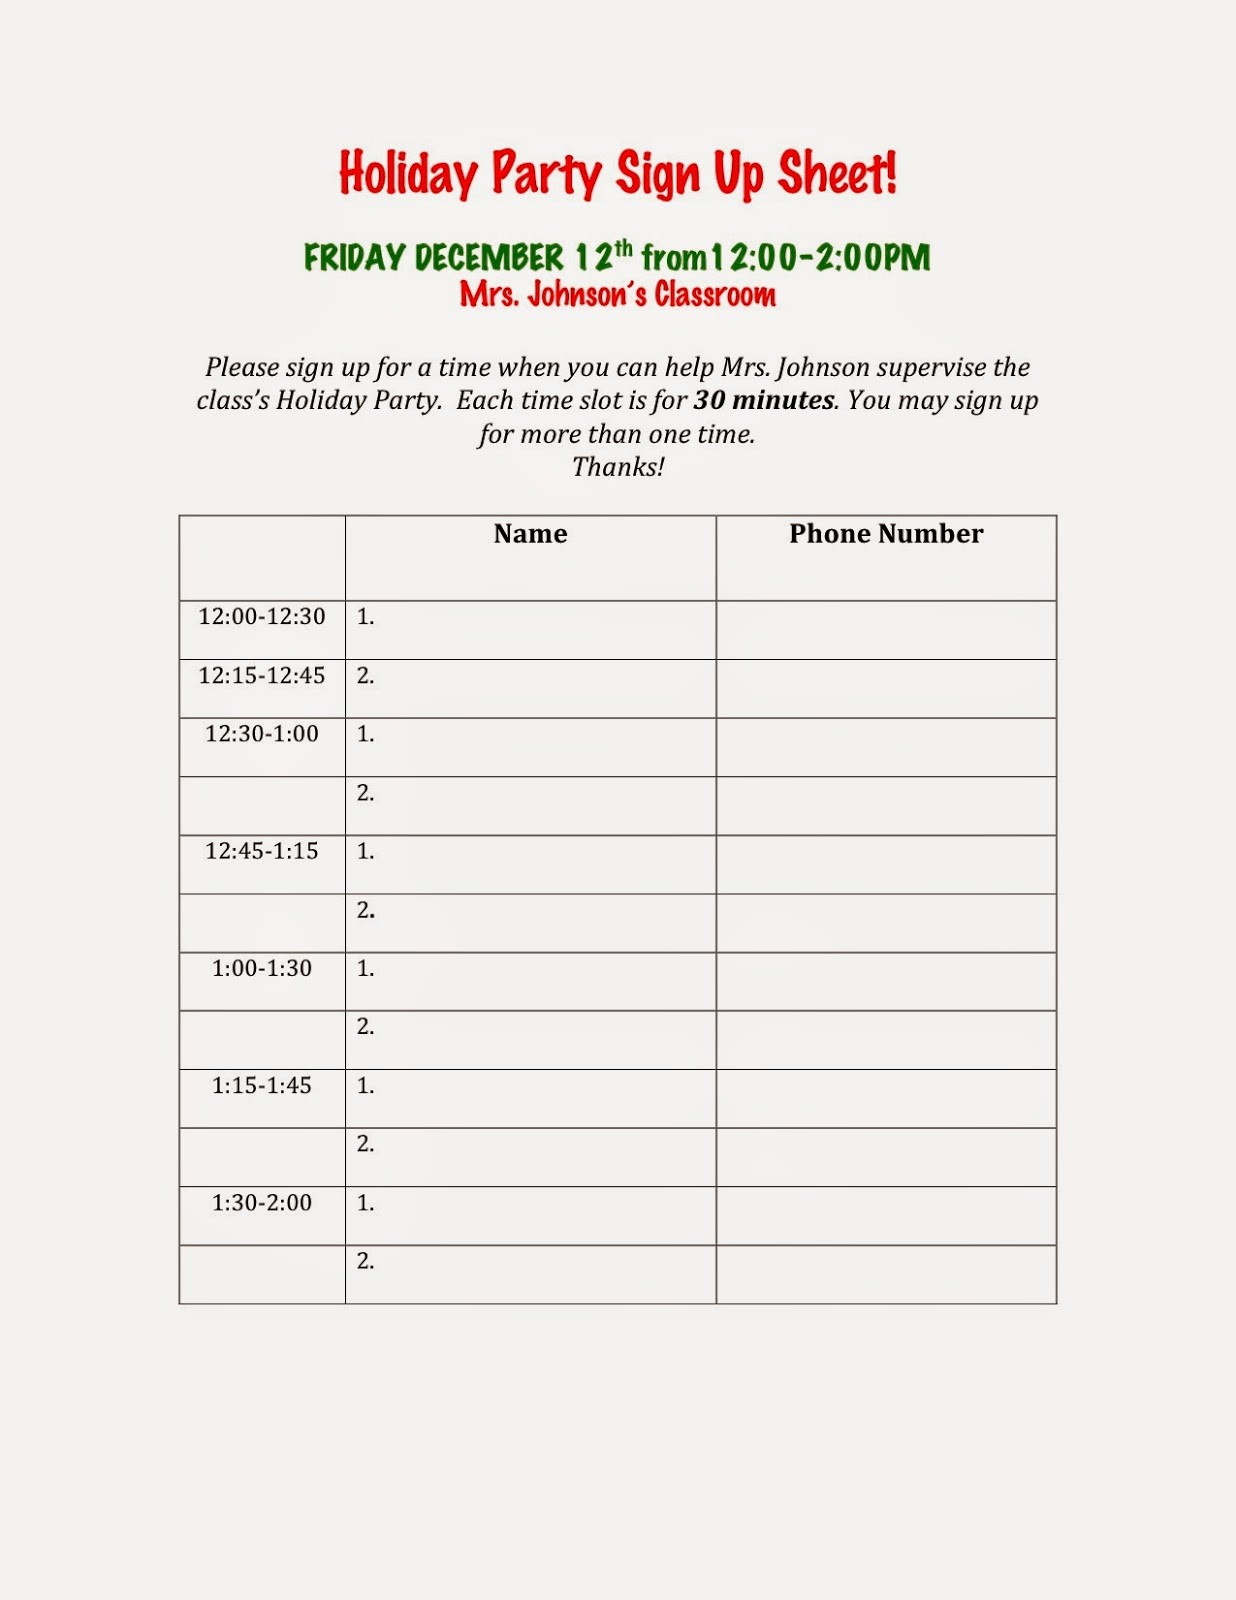 Holiday Sign Up Sheet Template Beautiful Avenue B Holiday Party Sign Up Sheets